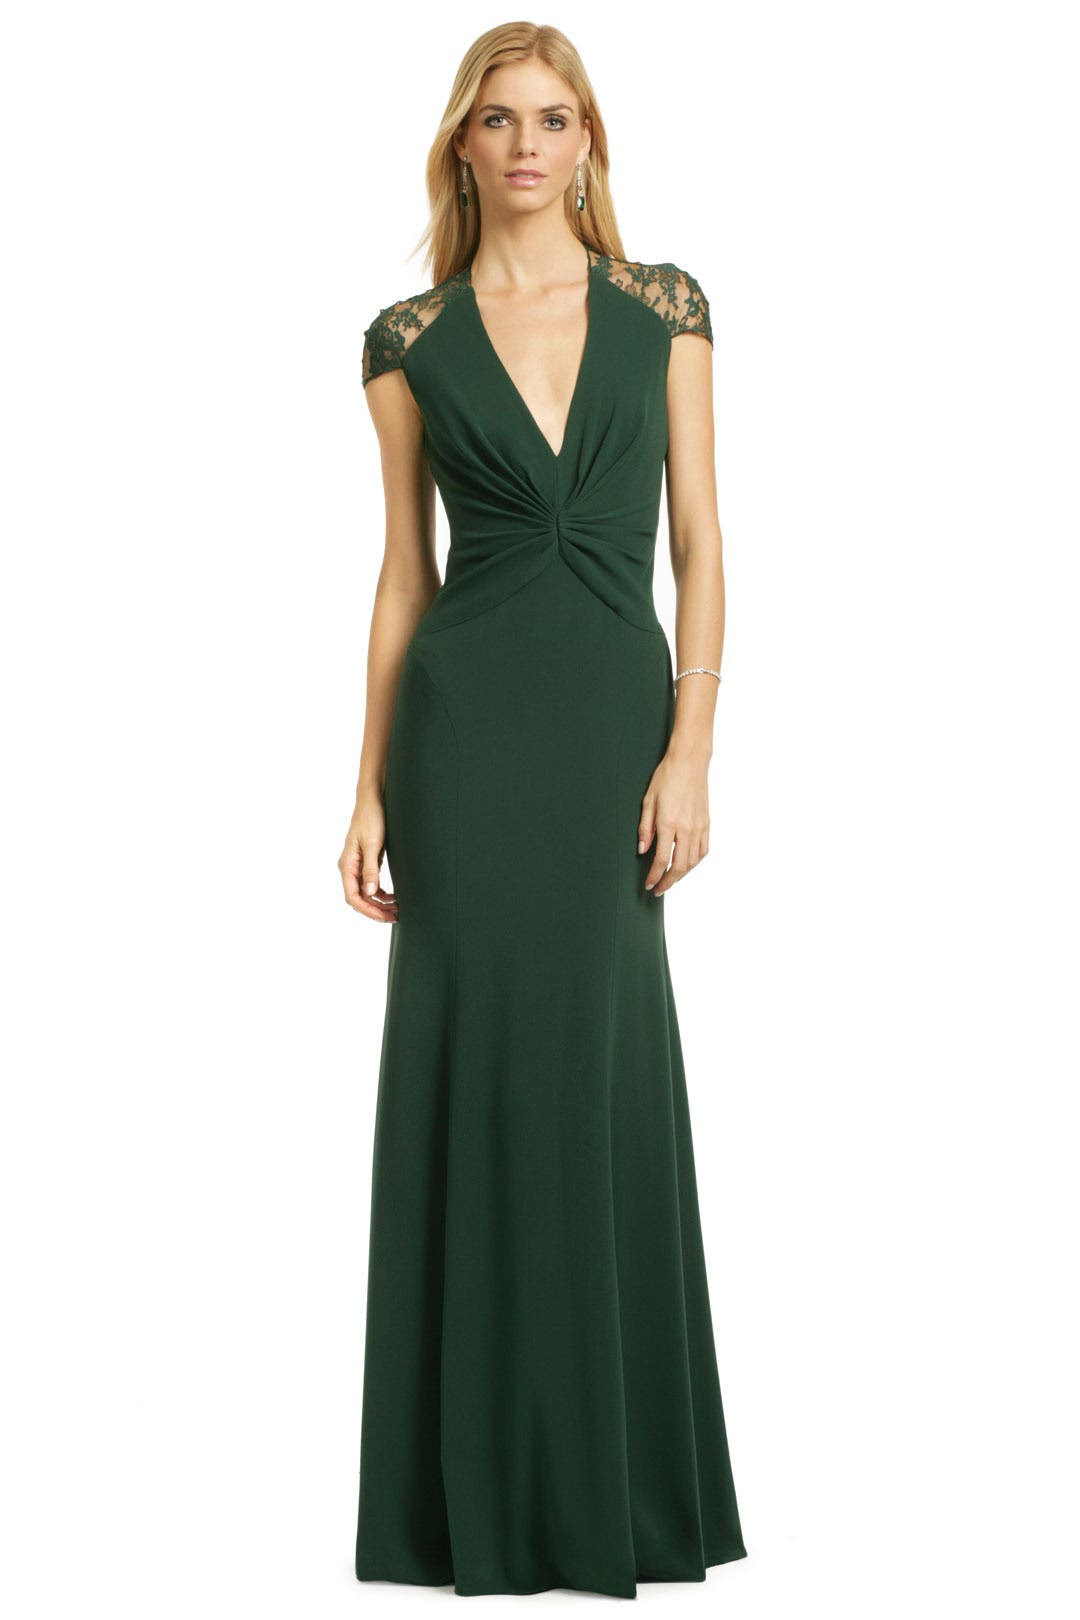 Jade Serenity Gown by Reem Acra